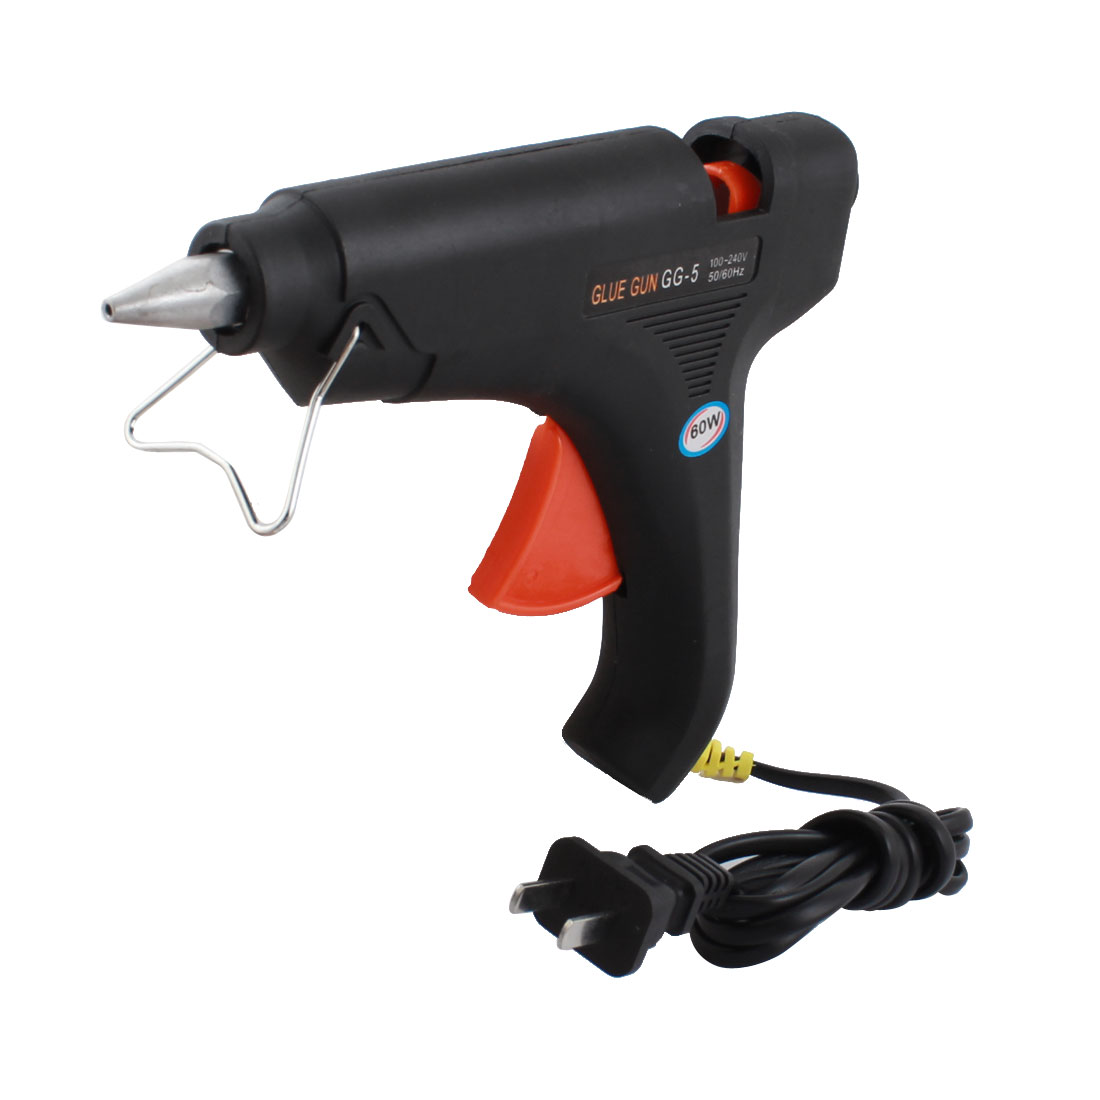 AC 100-240V US Plug 60W Triggered Electric Hot Melt Glue Gun GG-5